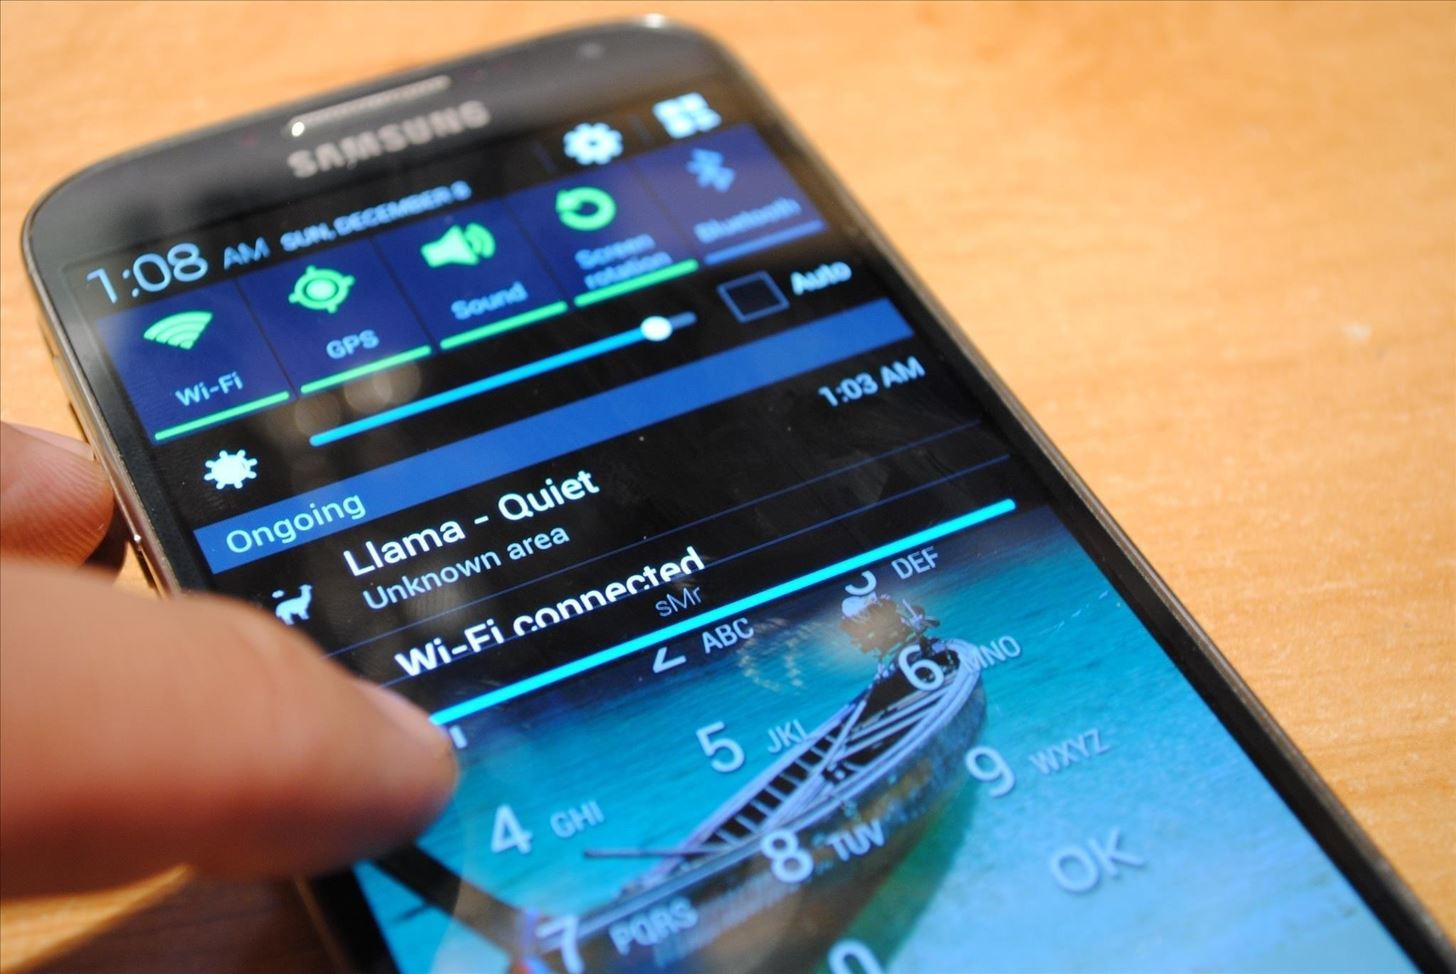 How to Access Your Notifications from the Pattern or PIN-Protected Lock Screen on Your Galaxy S4